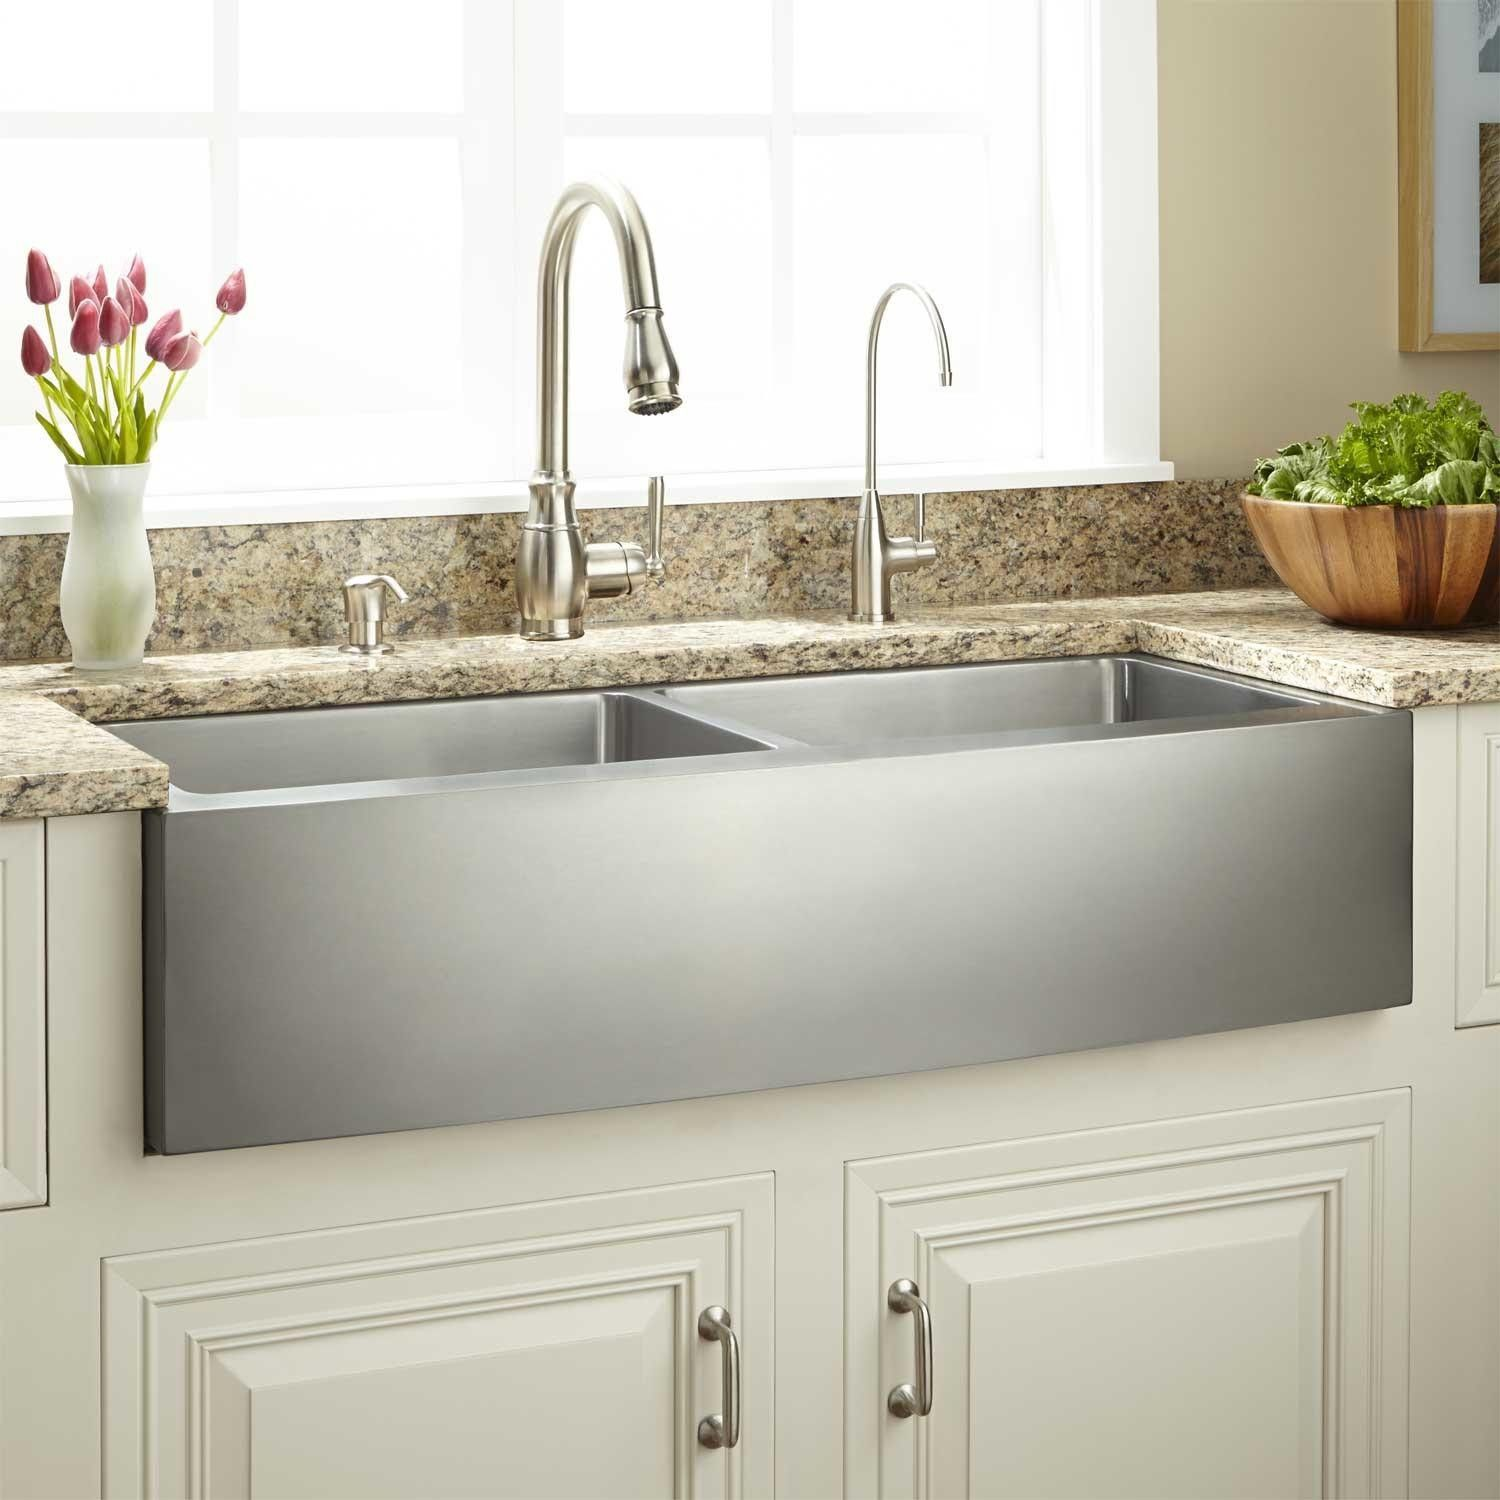 Awesome Julien Nantucket Farmhouse Kitchen Sink The Most Elegant As Well As Lovely Juli Stainless Steel Farmhouse Sink Farmhouse Sink Kitchen Steel Farmhouse